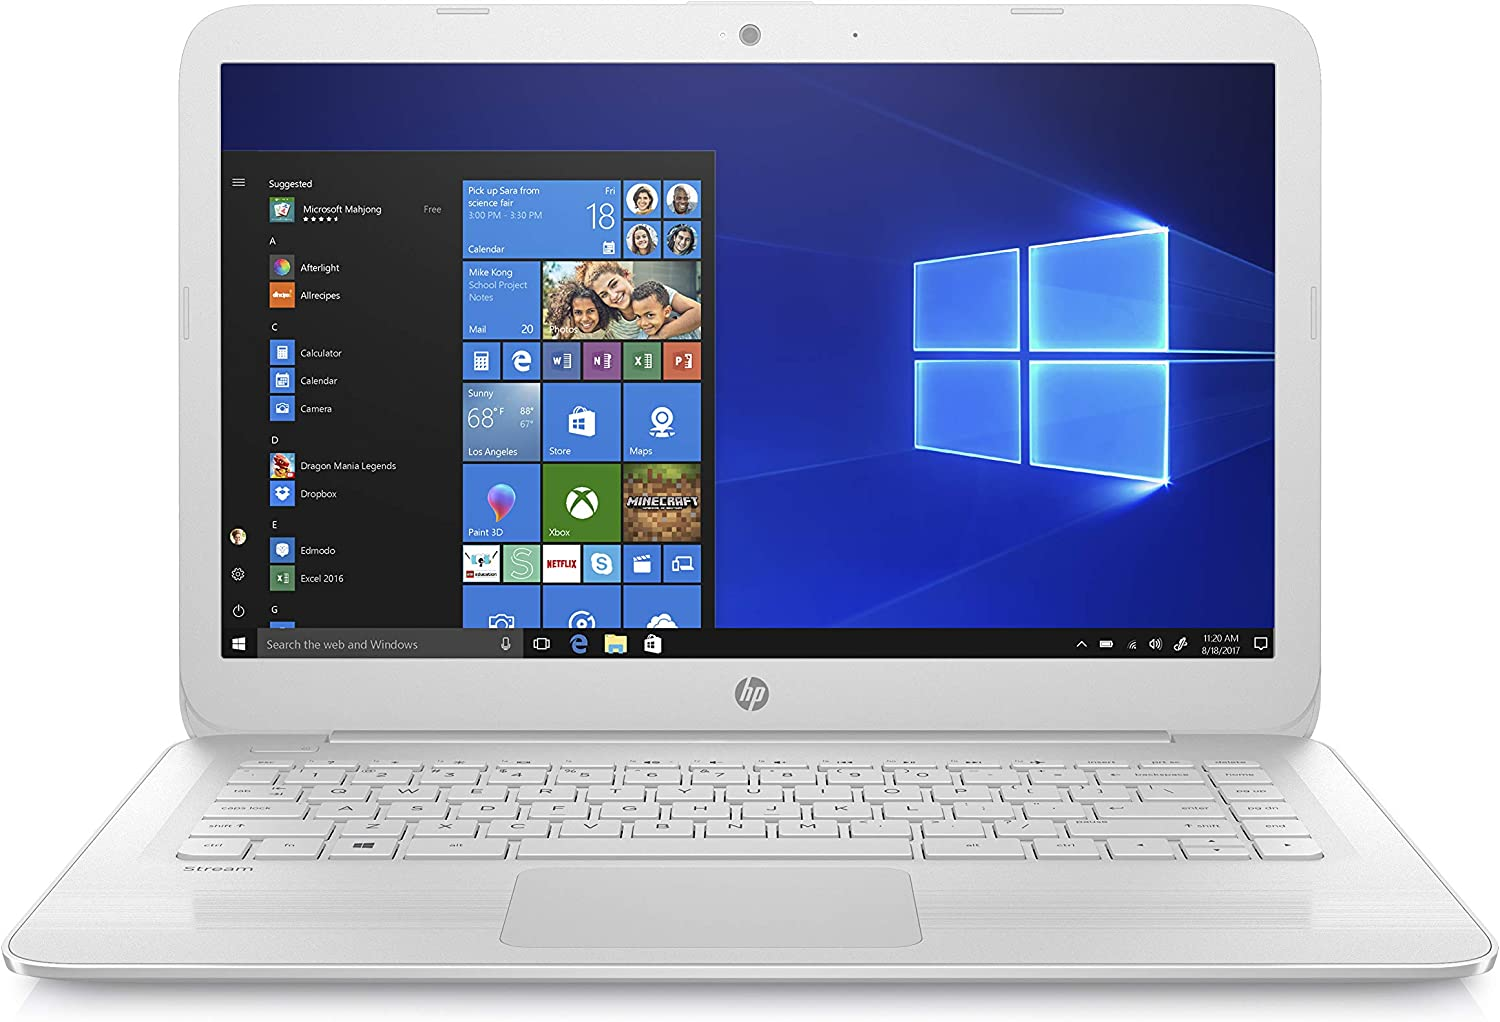 HP Stream 14-inch Laptop, Intel Celeron N4000, 4 GB RAM, 32 GB eMMC, Windows 10 Home in S Mode With Office 365 Personal For 1 Year (14-cb183nr, Diamond White), Model Number: 9MV83UA#ABA